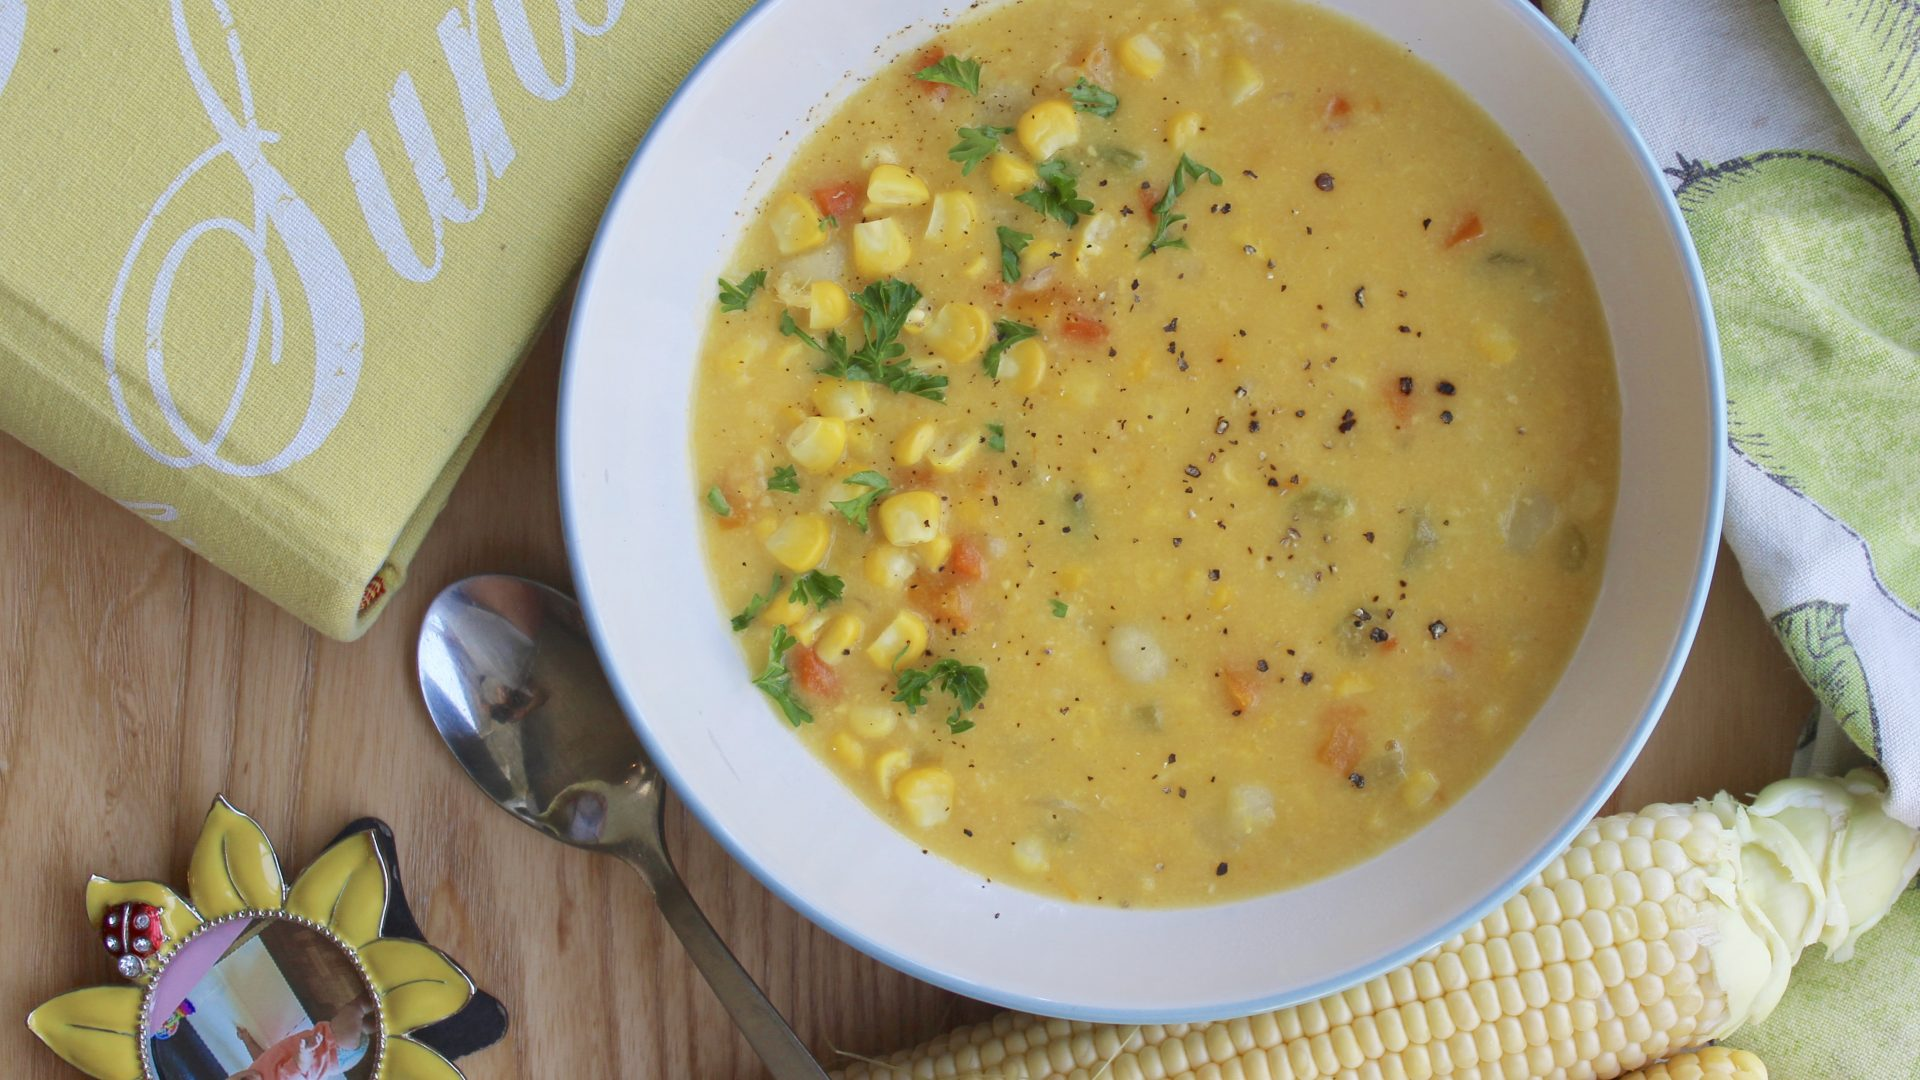 Incredibly Delicious Corn Chowder - Guilt Free Comfort Dish